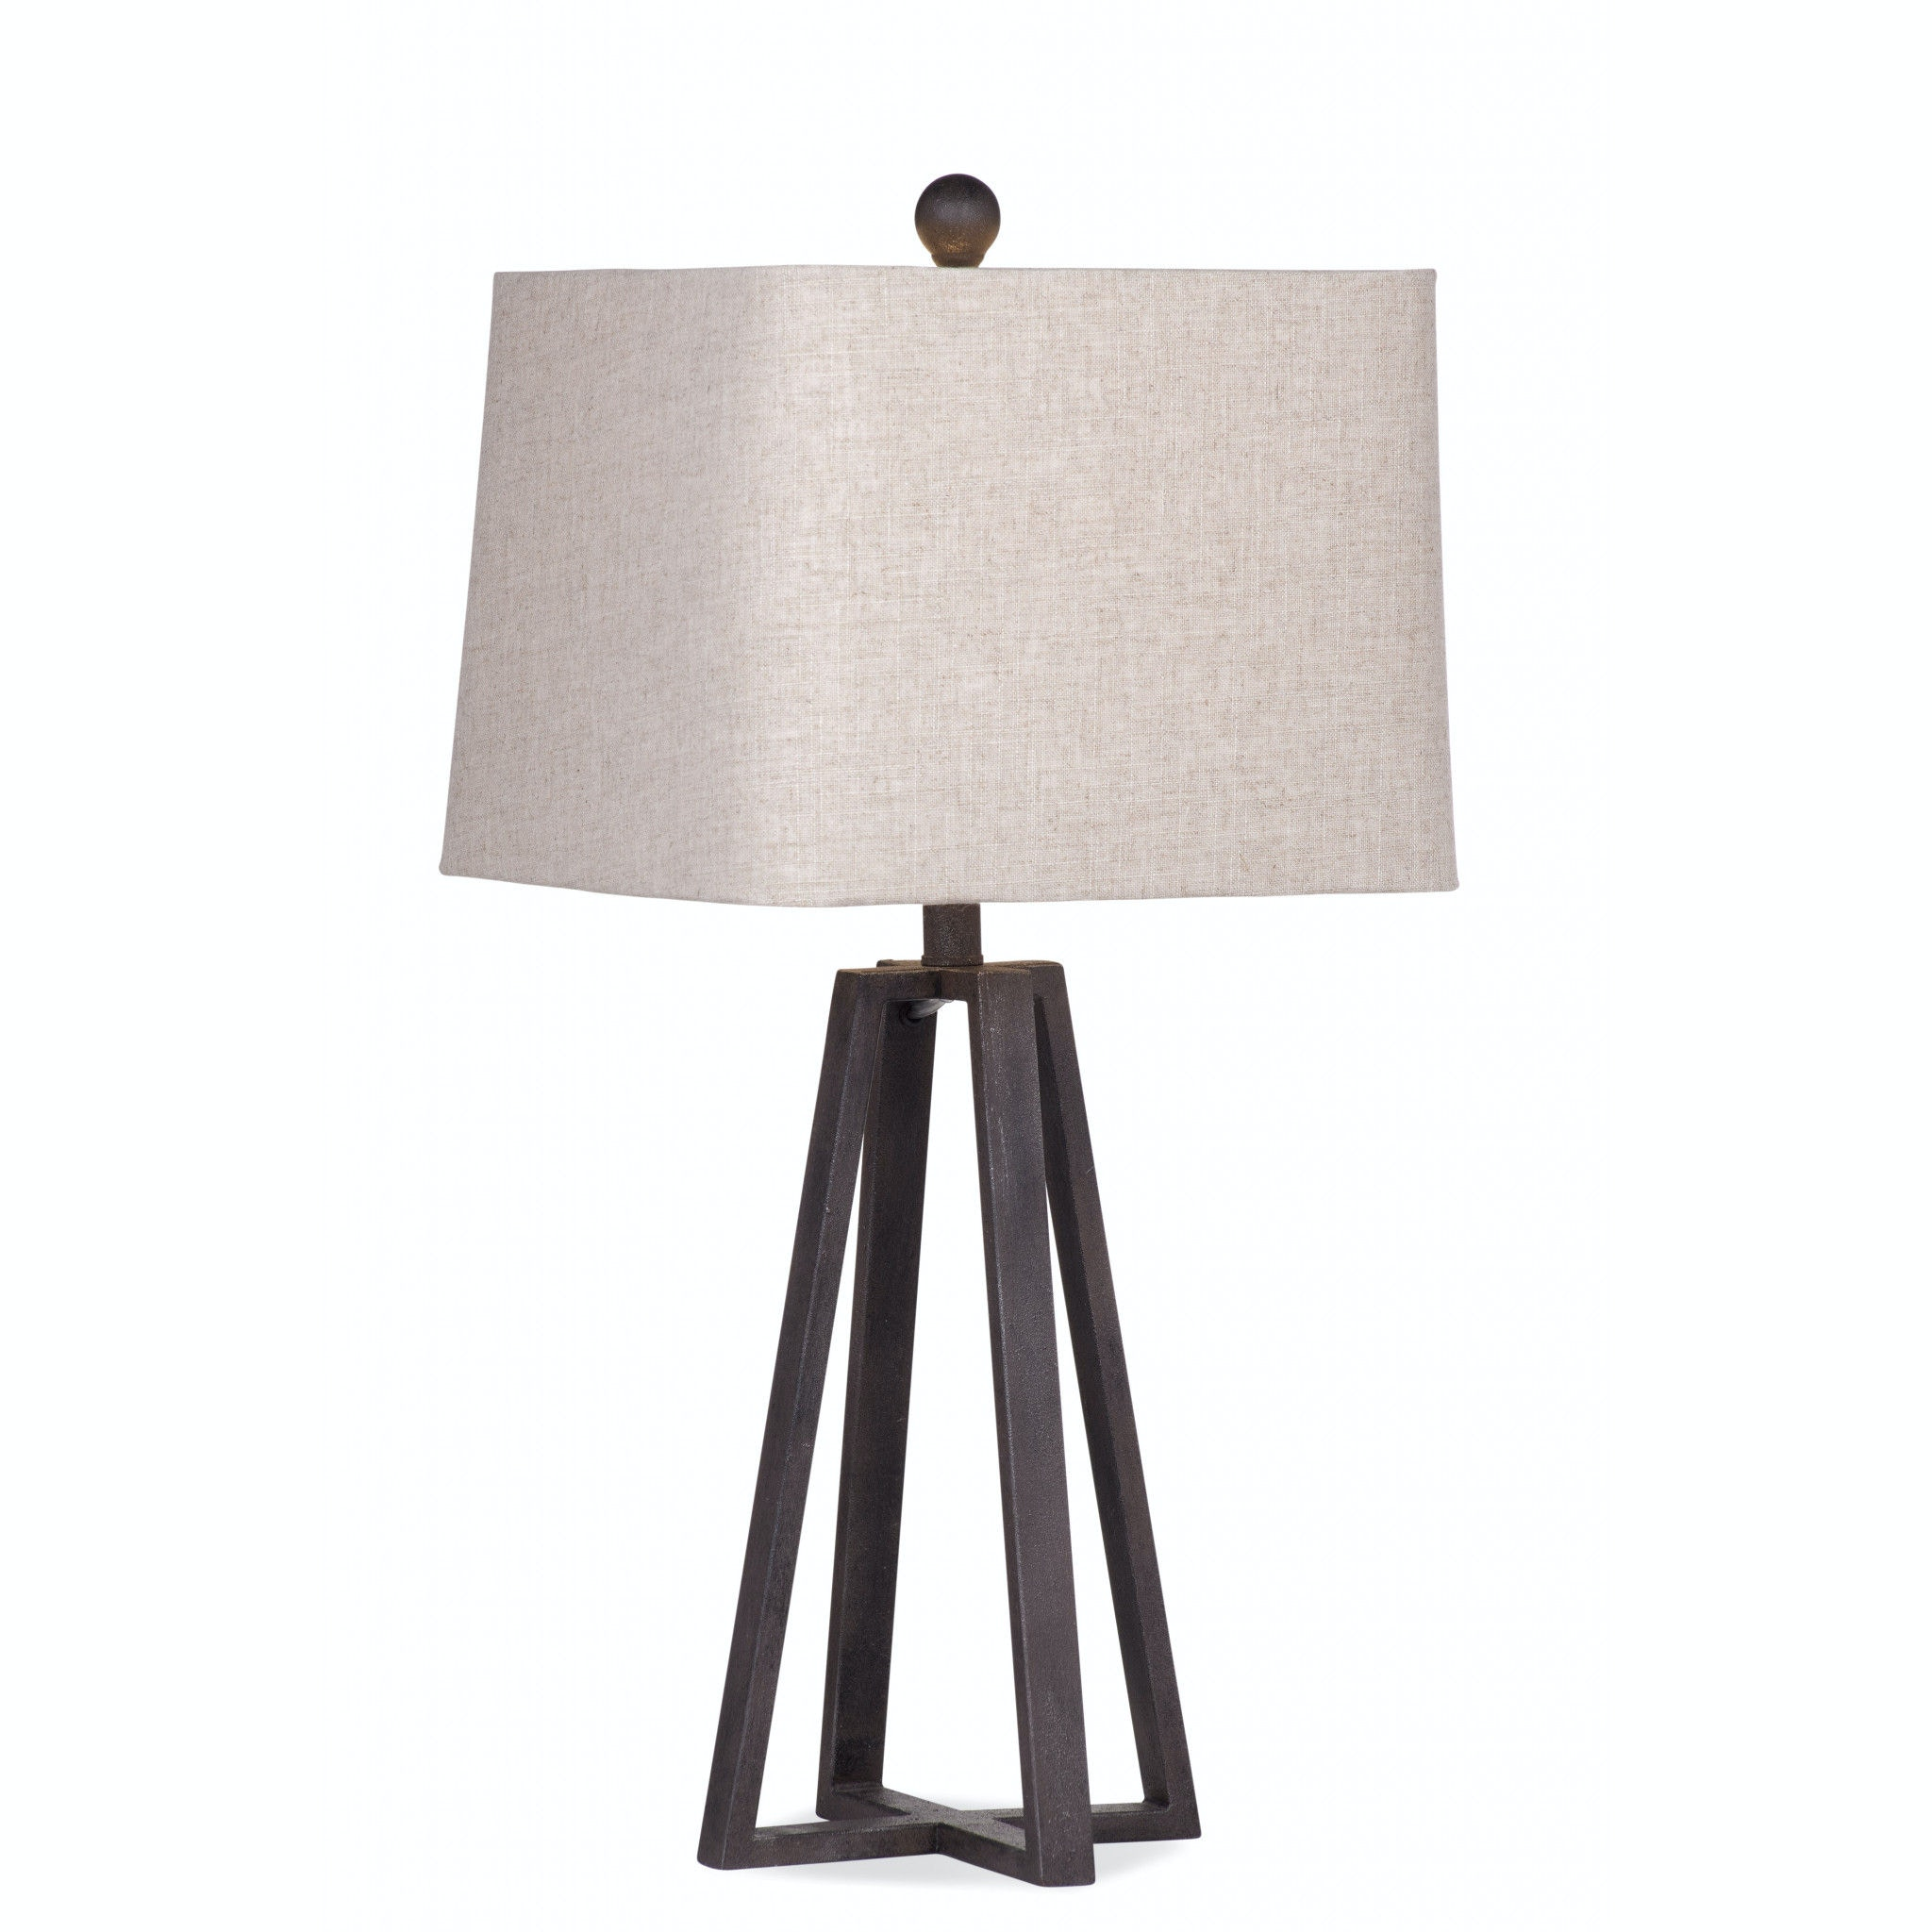 Bassett Mirror Company Lamps And Lighting Denison Table Lamp L3015t